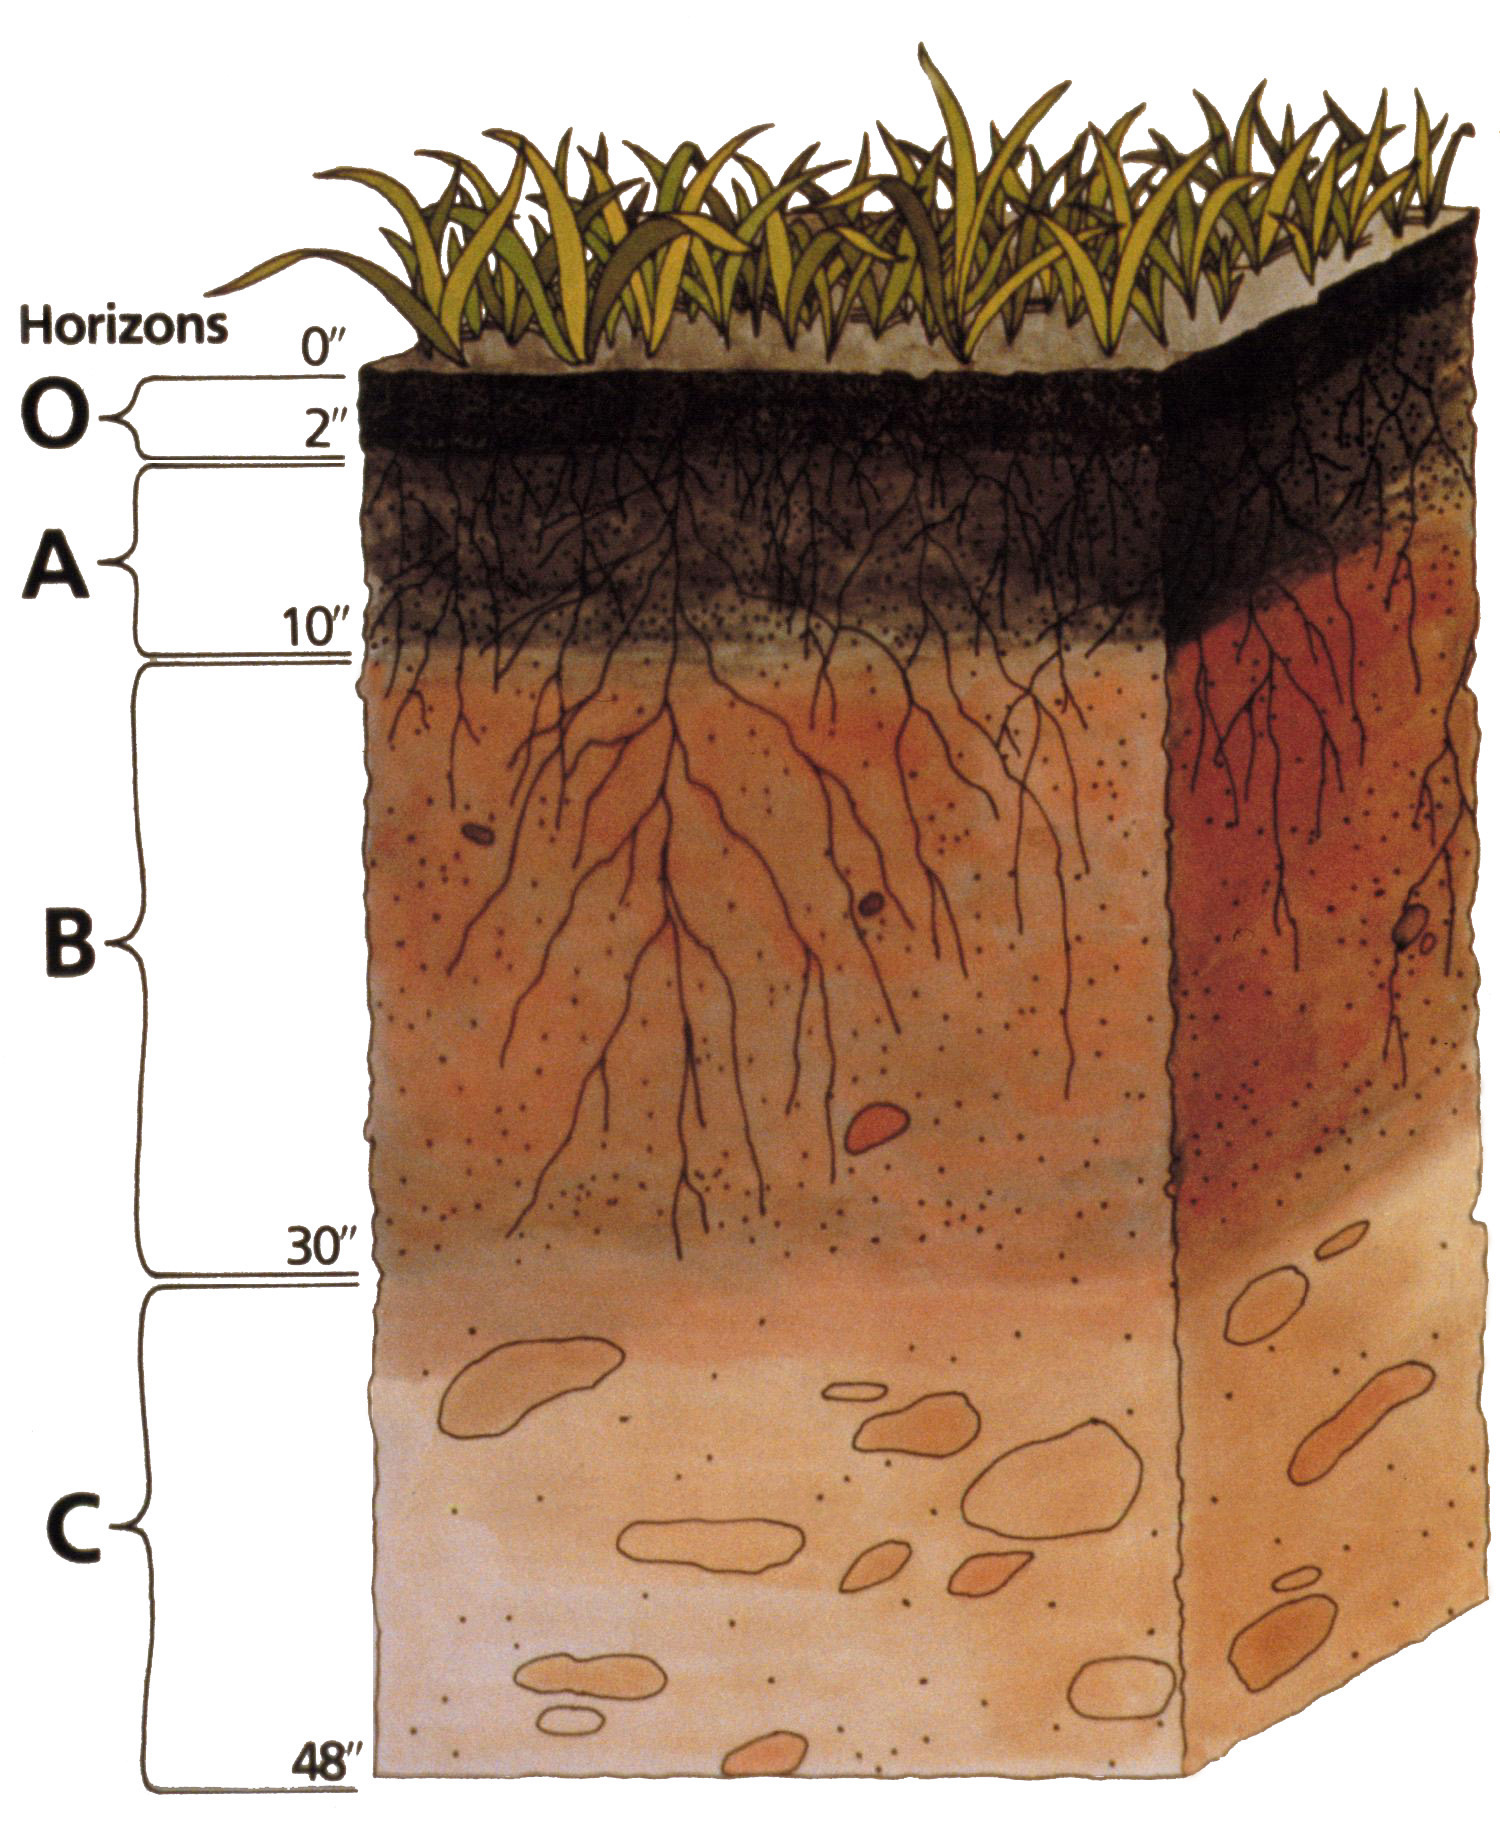 Soil education nrcs soils for Soil dictionary